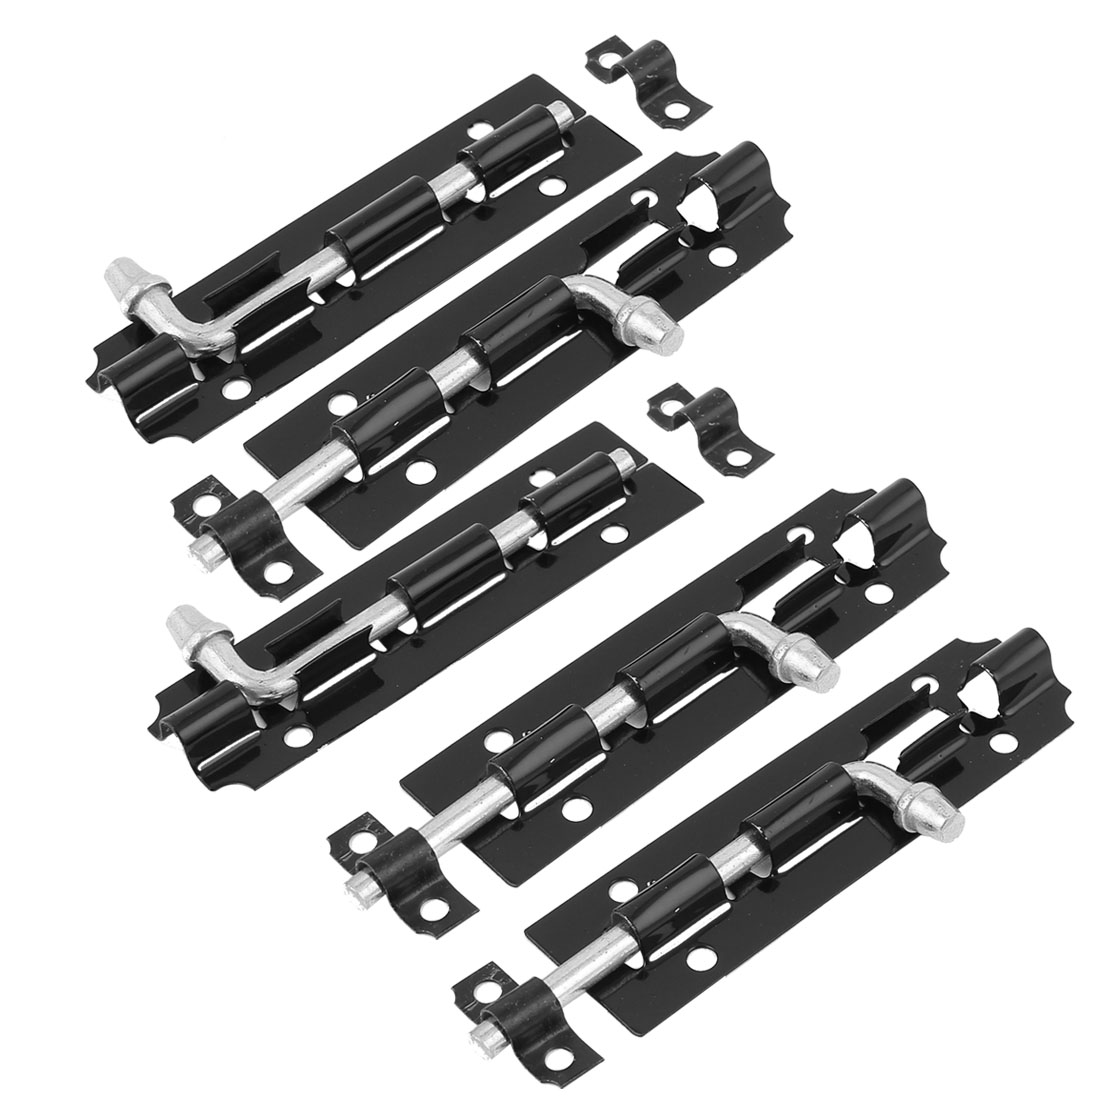 Cabinet Cupboard Door Gate Latch Slide Lock Barrel Bolt Black 5 Pcs